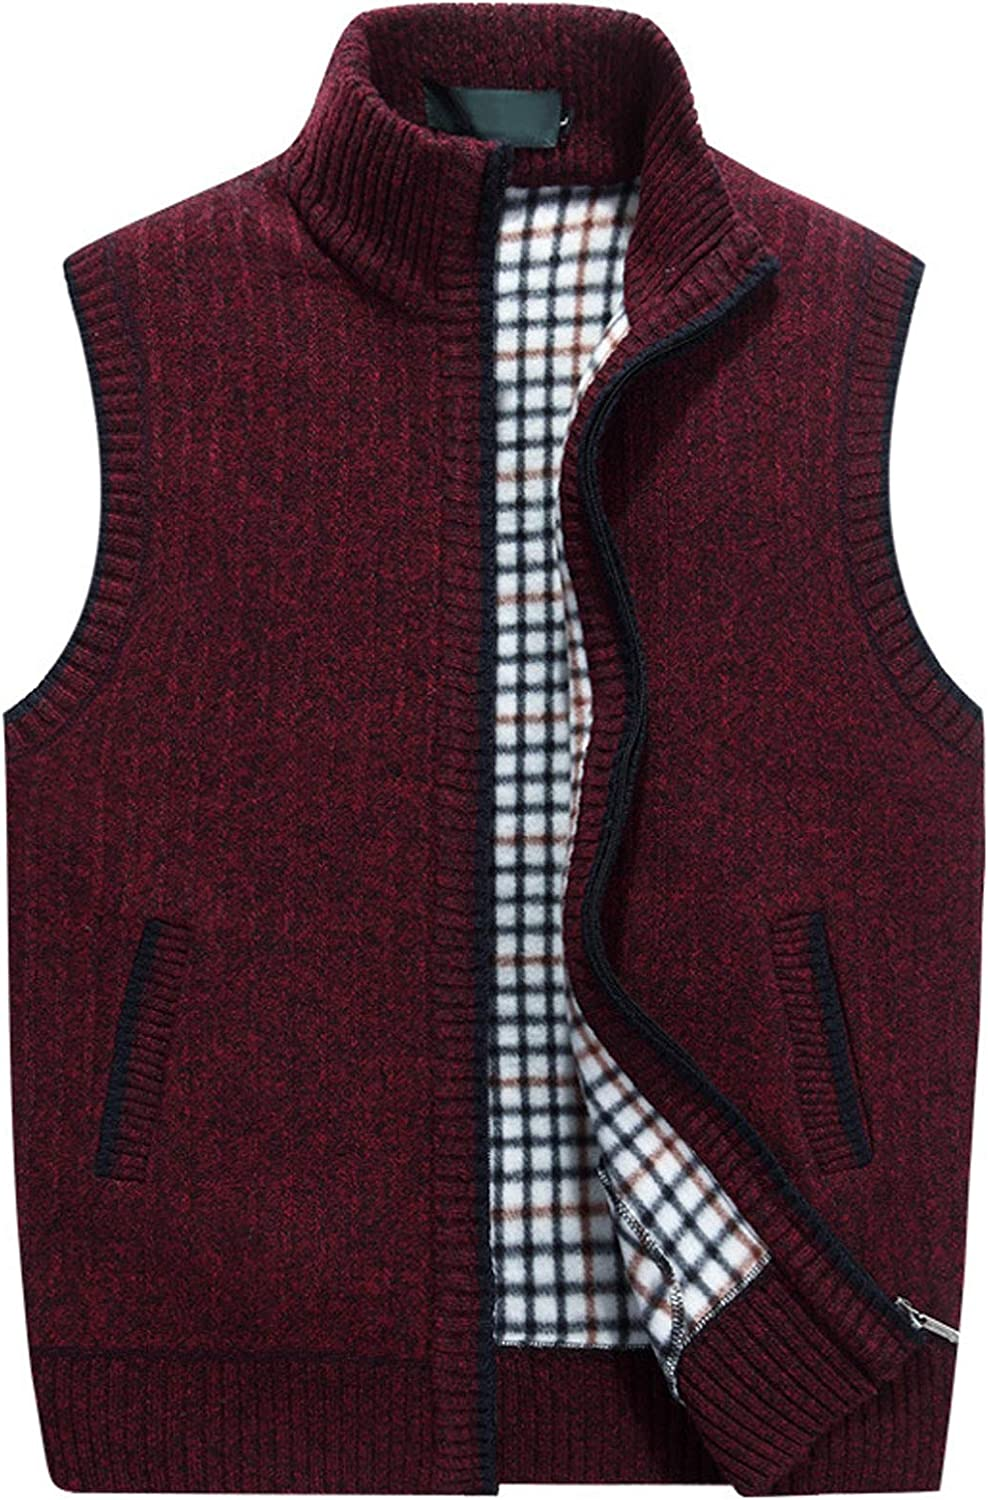 chouyatou Mens Gentle Band Collar Zipper Slim Sleeveless Cable Knitted Cardigan Vests Sweater